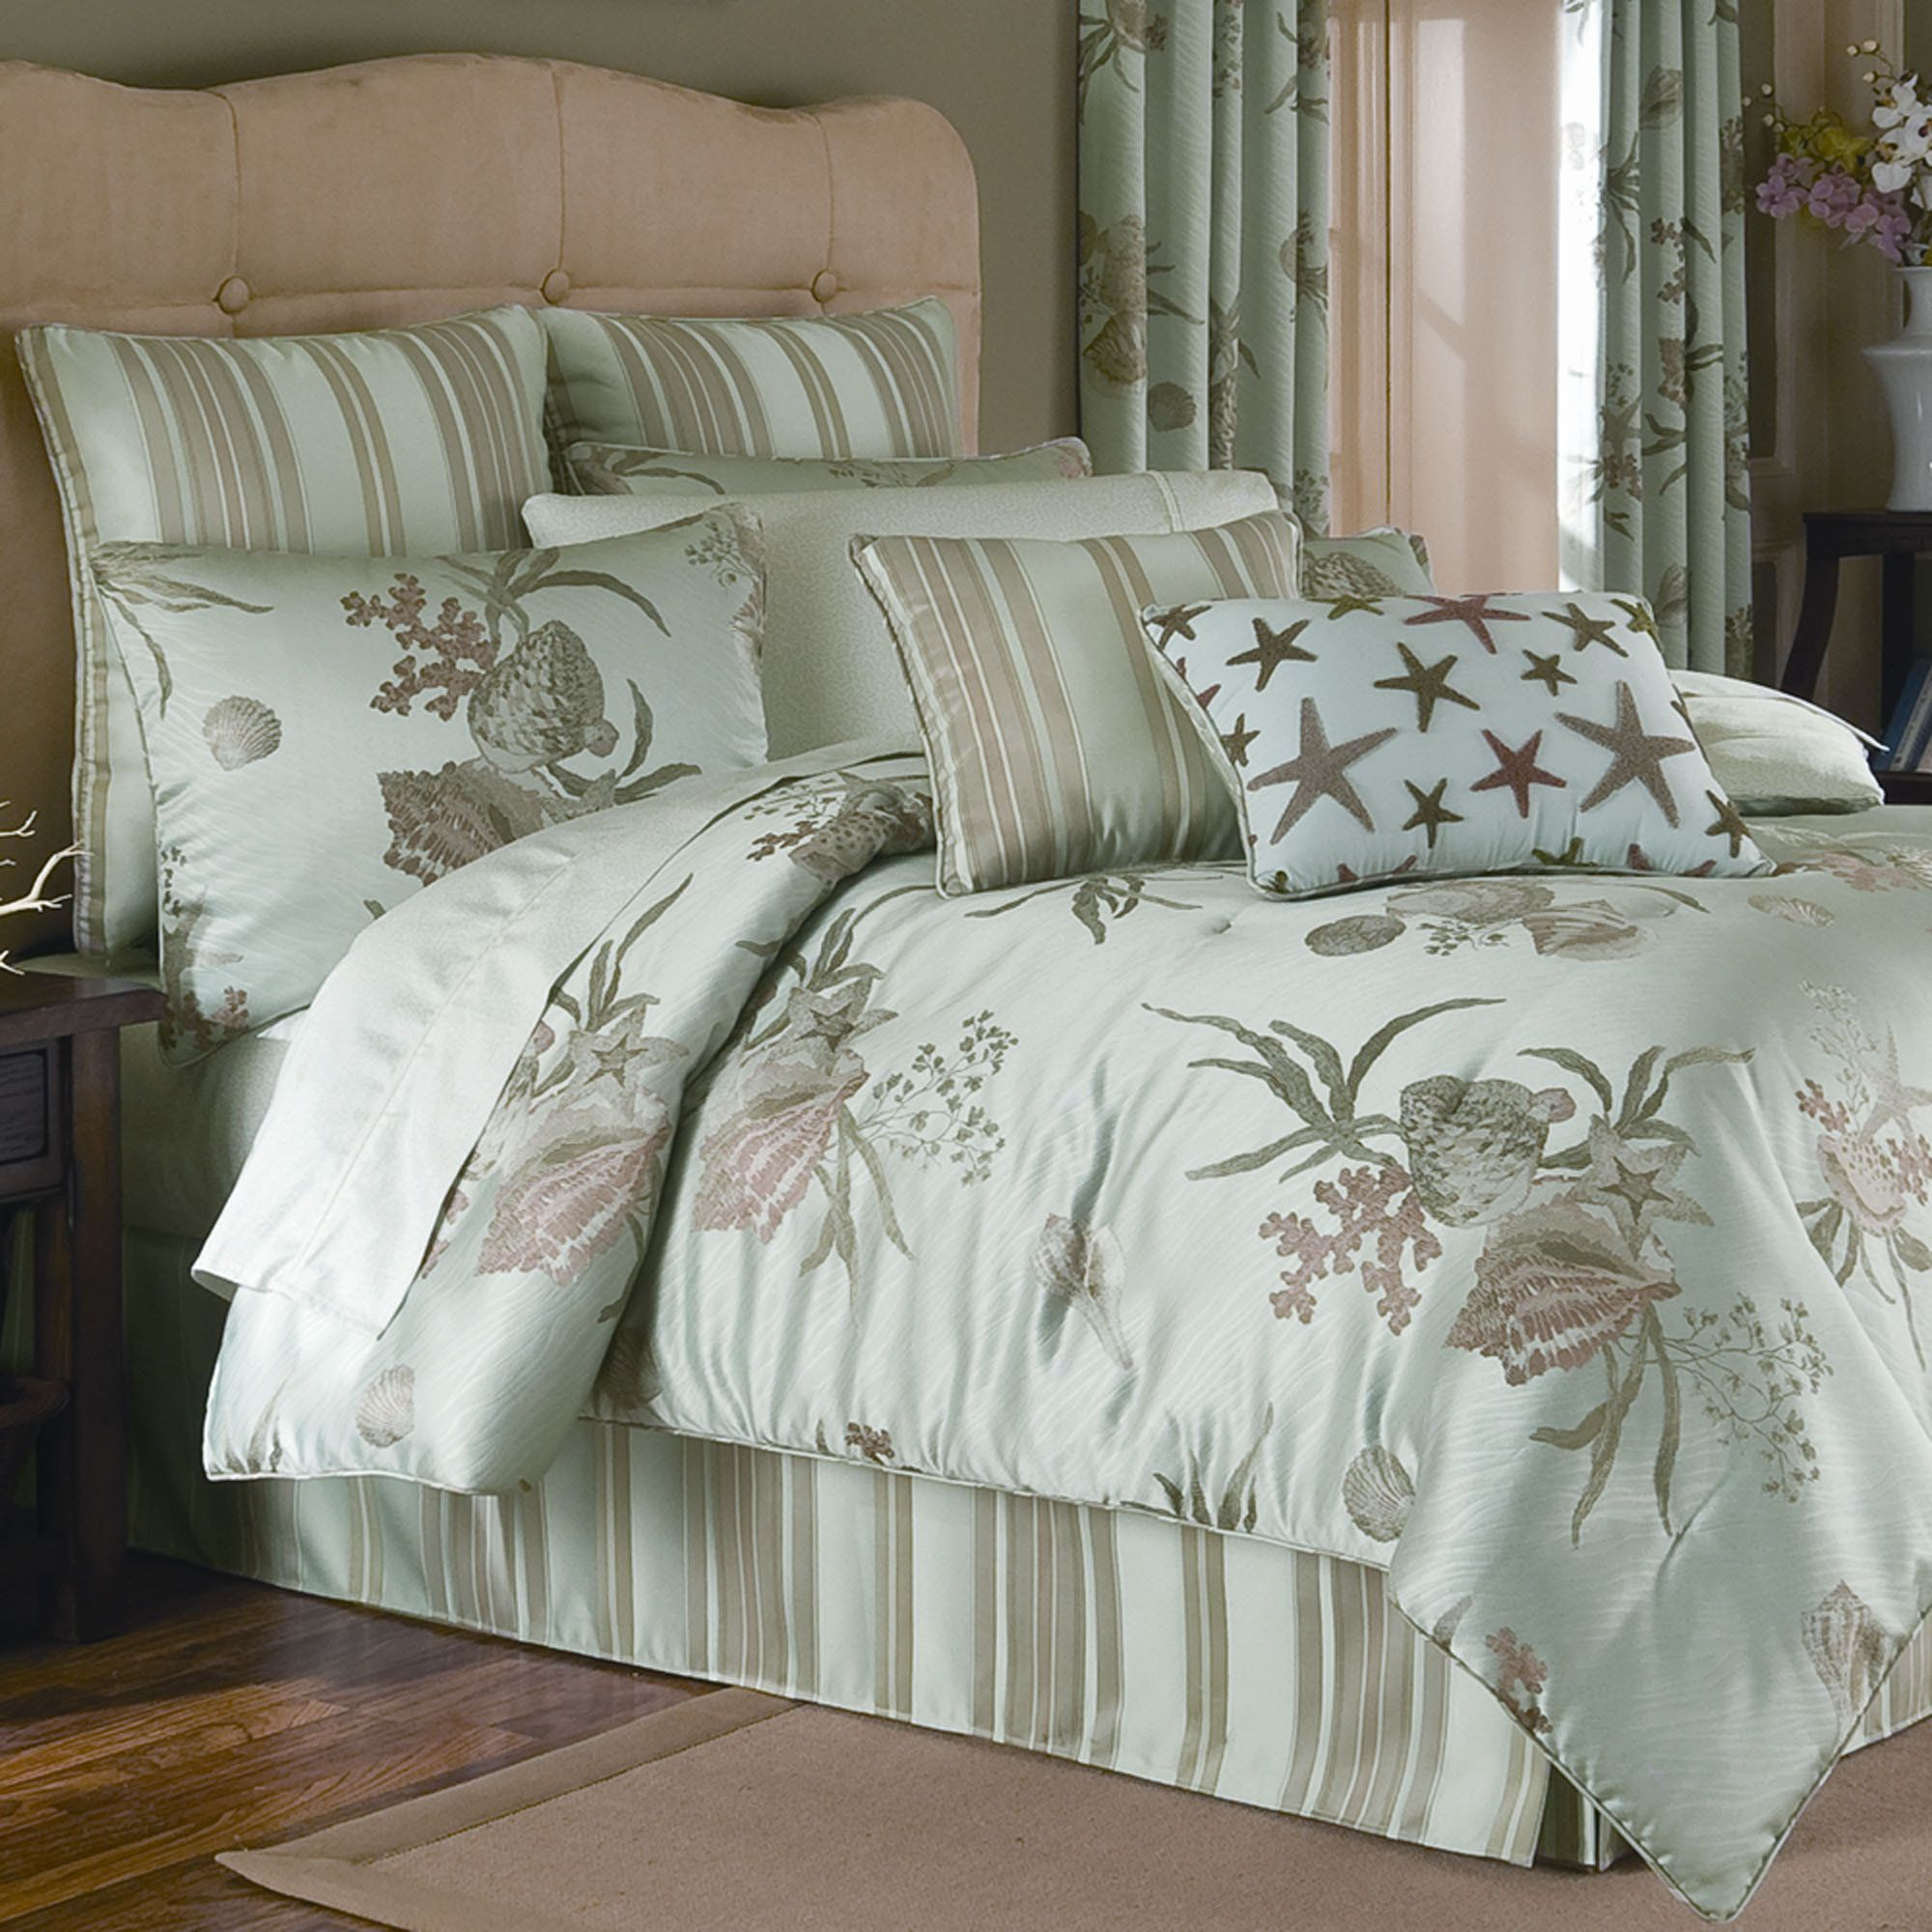 Croscill Discontinued Bedding